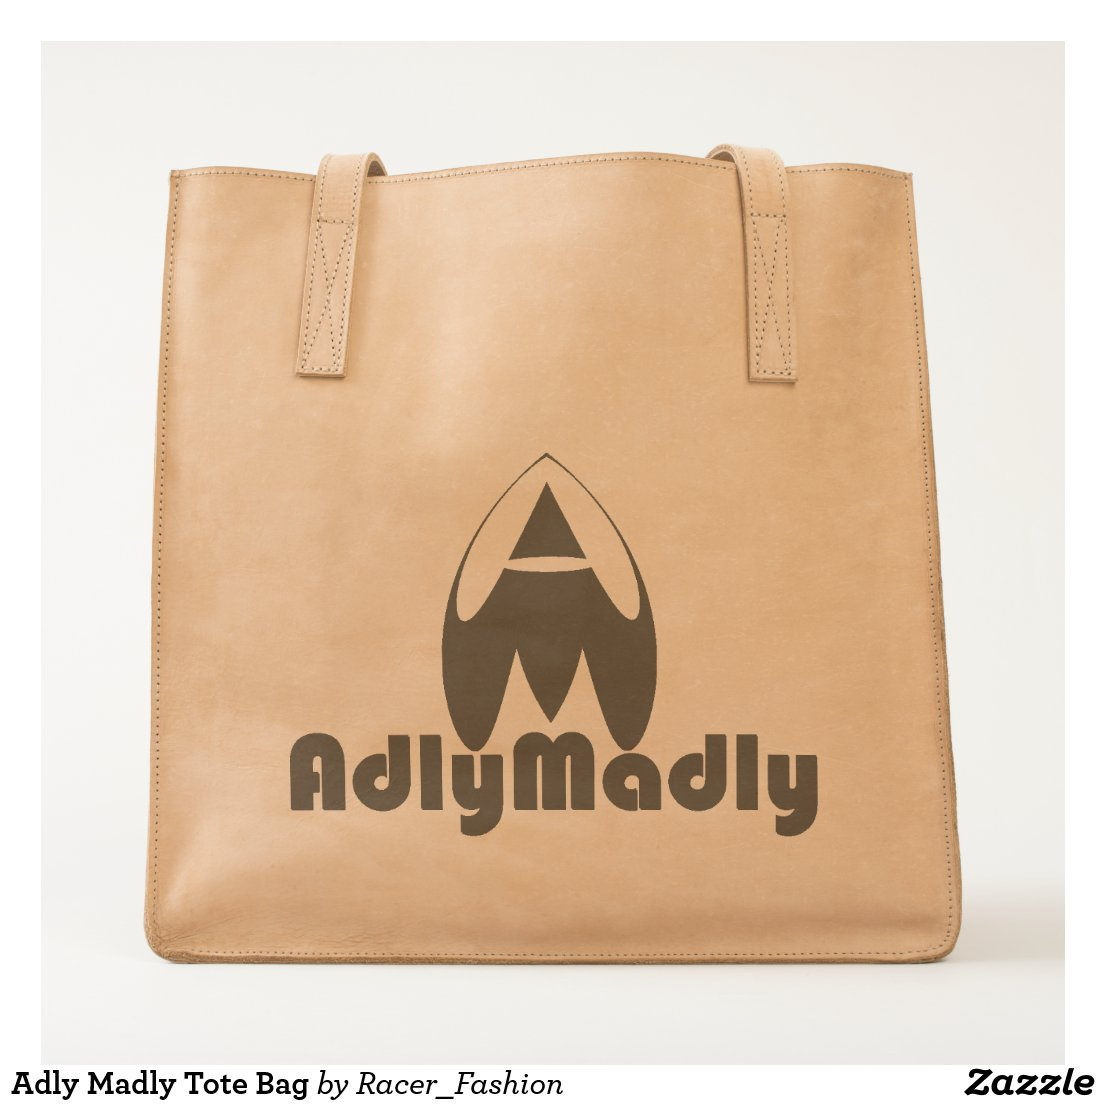 Adly Madly Tote Bag